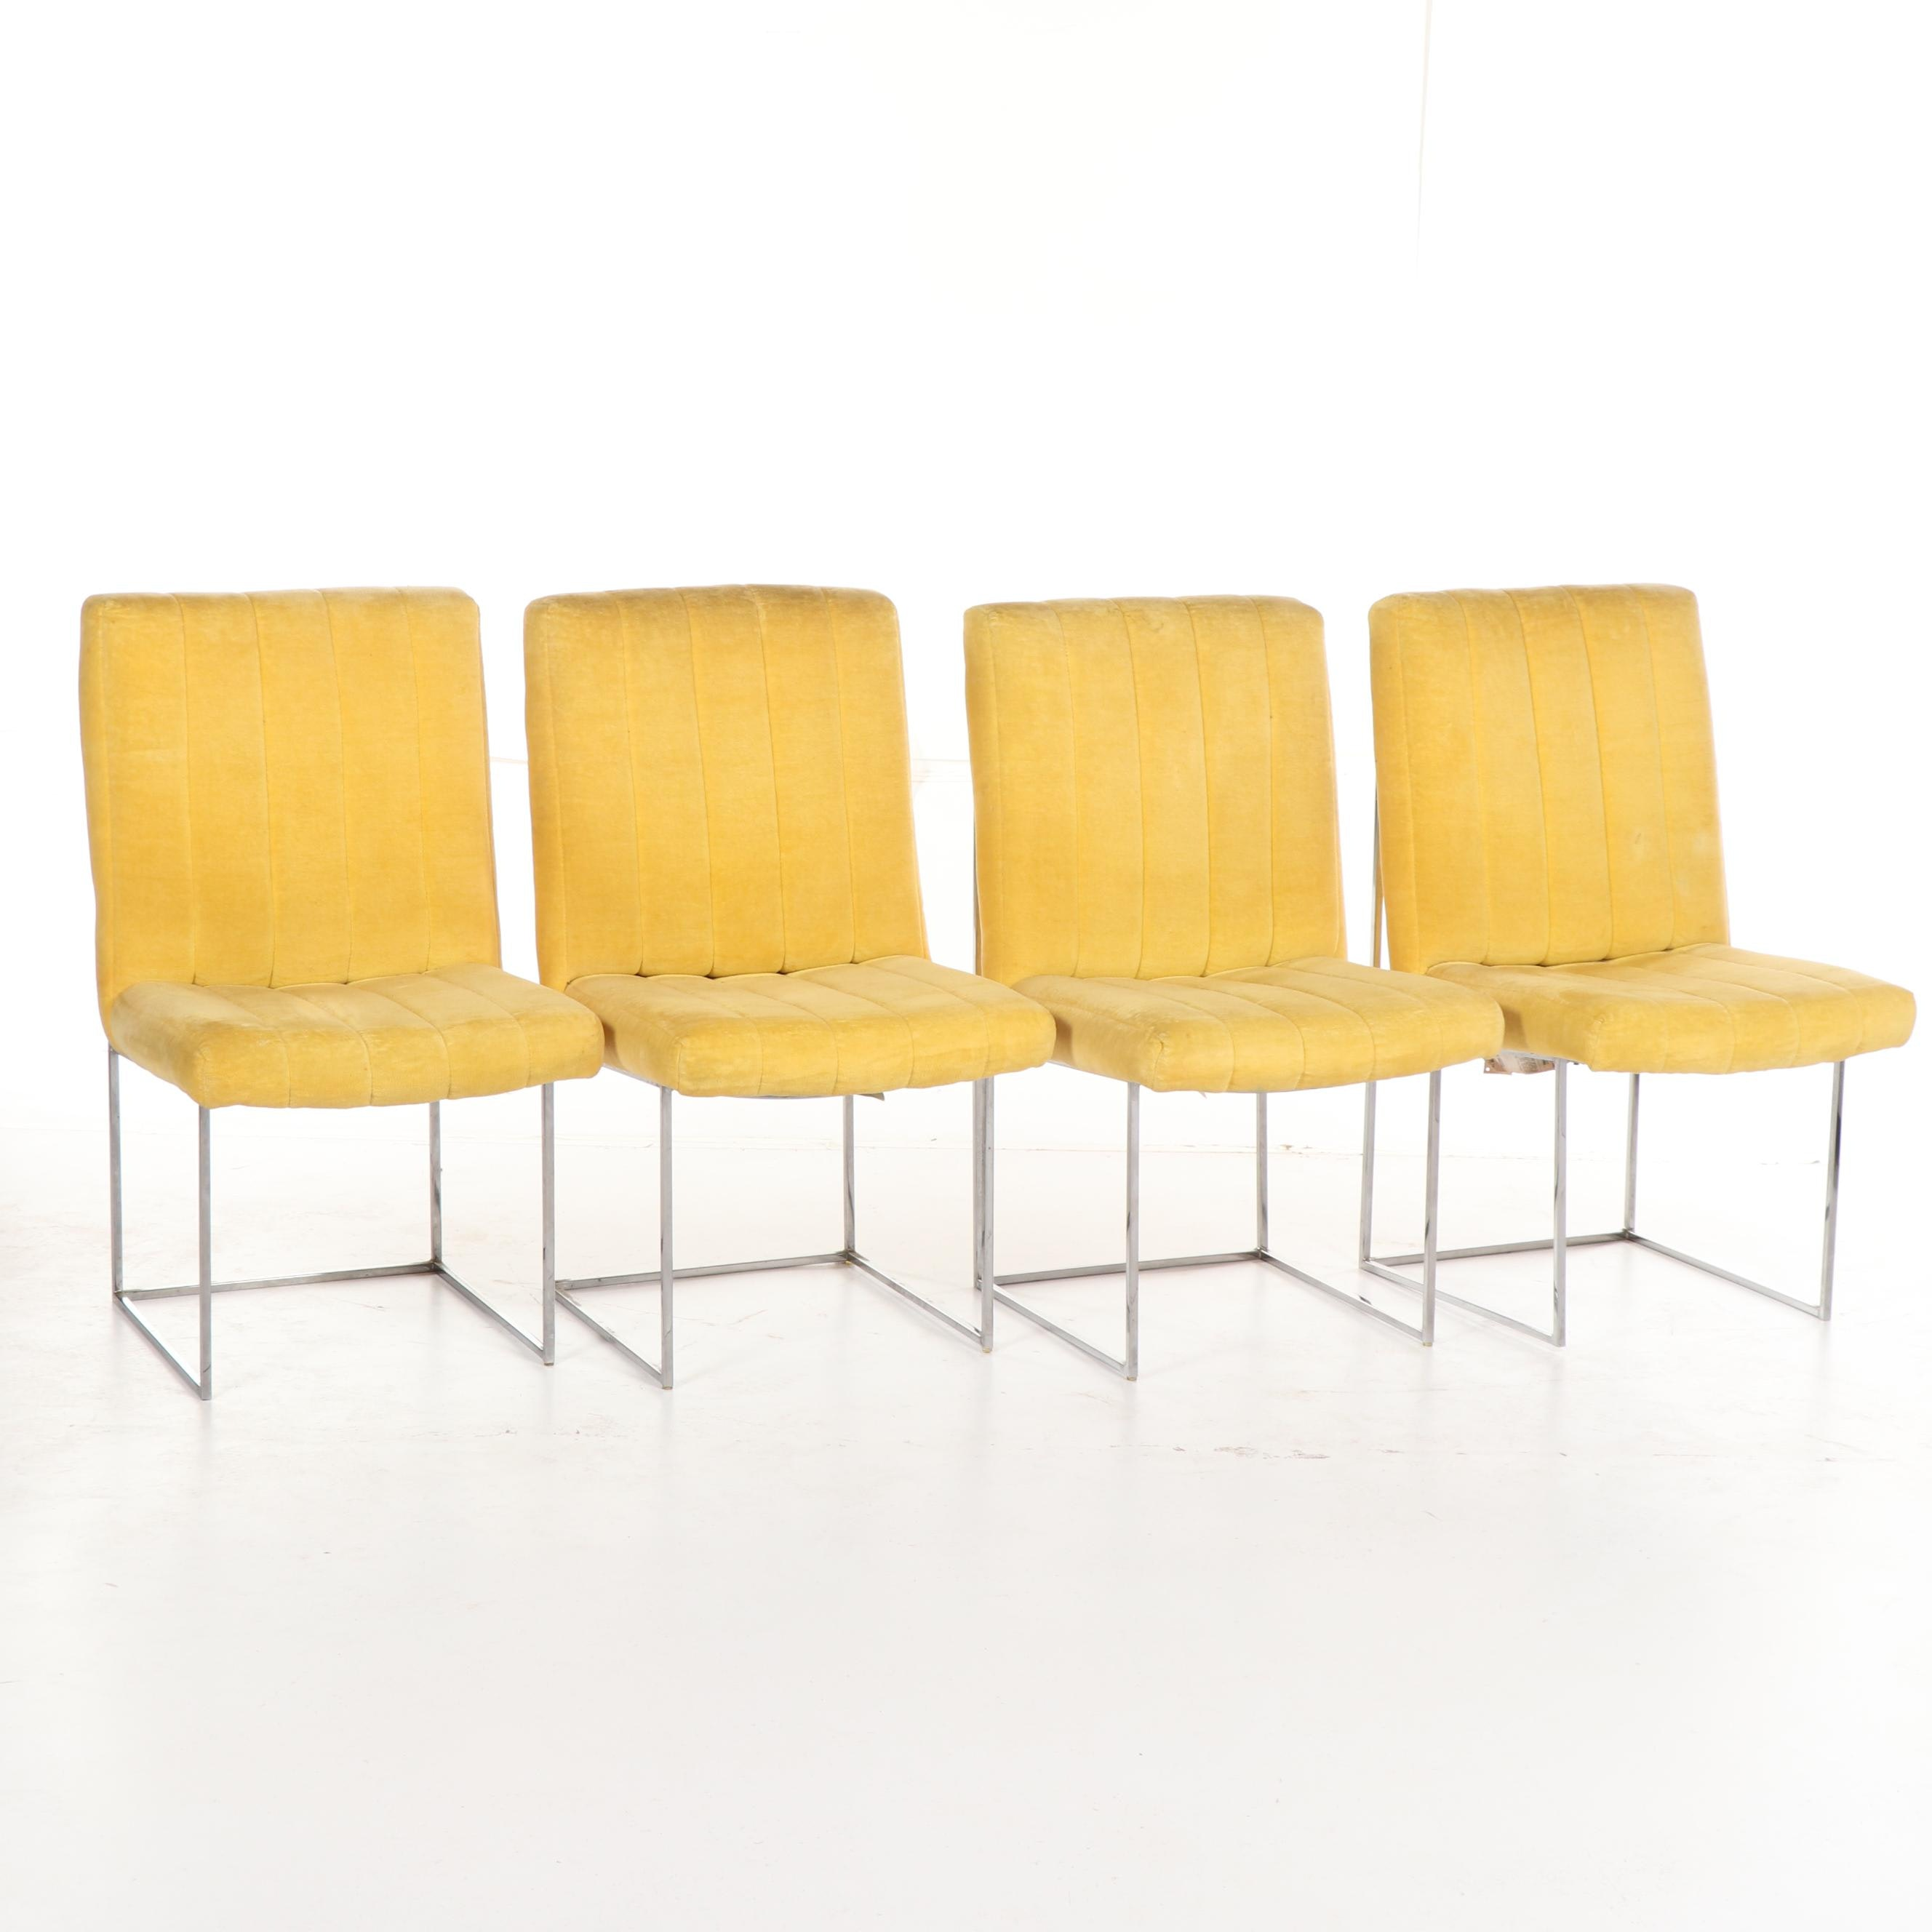 """Design Classic"" Dining Chairs by Milo Baughman for Thayer Coggin, Mid-20th C."